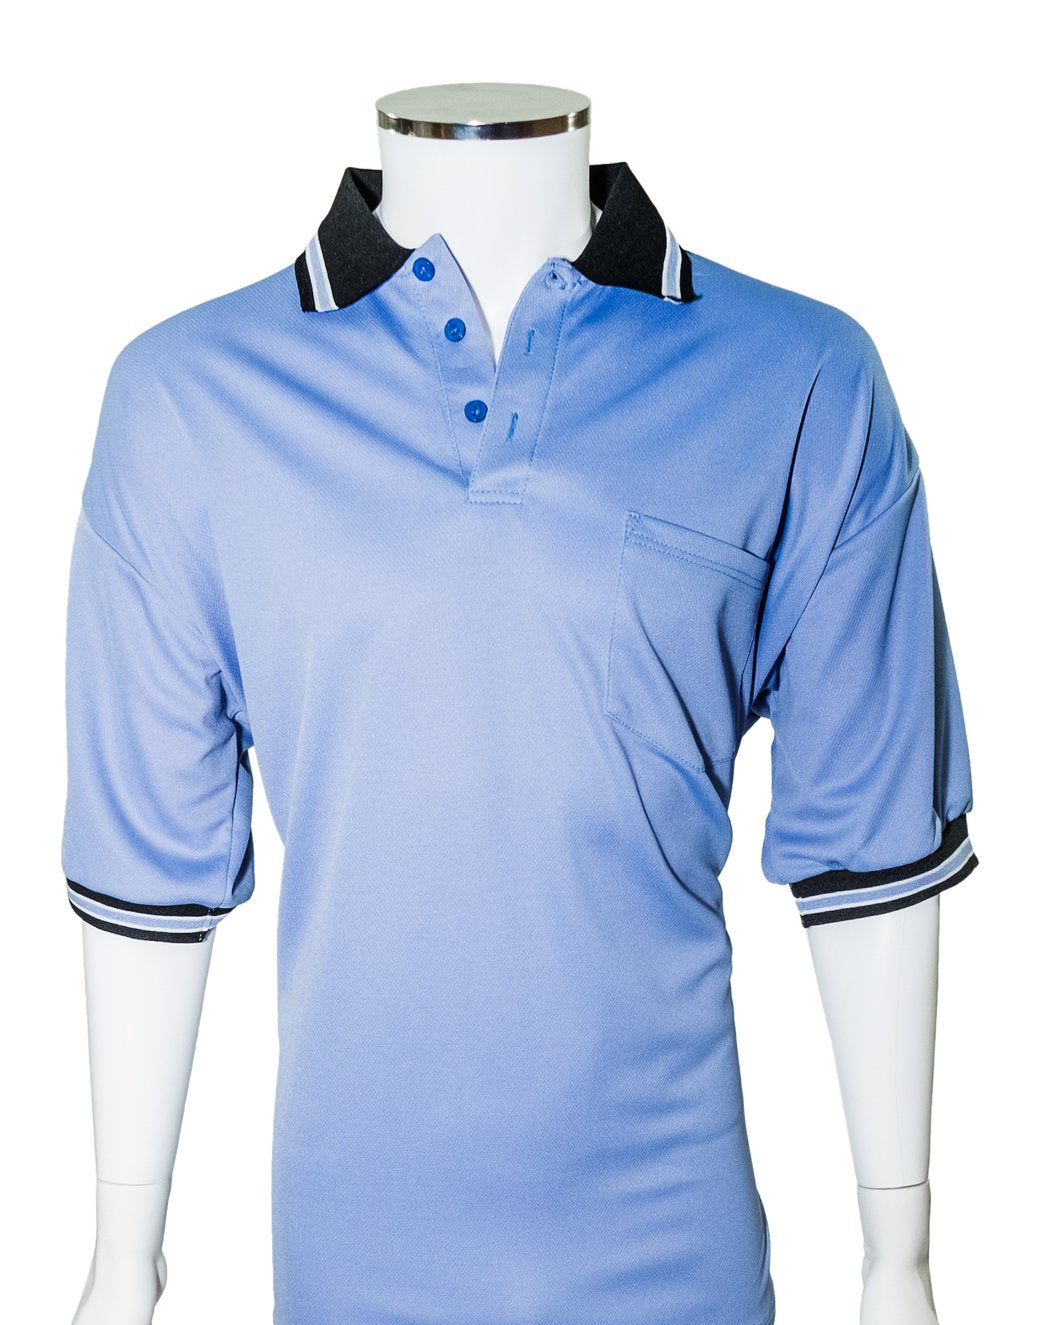 Major League Umpire Shirt - Polo Blue - Officials Depot